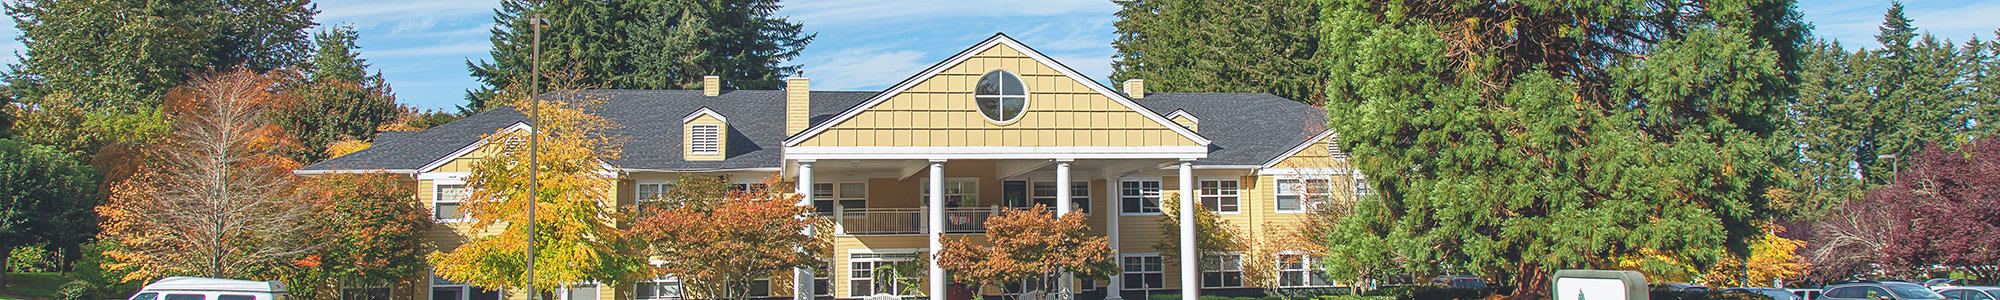 Contact us for information about senior living in Olympia